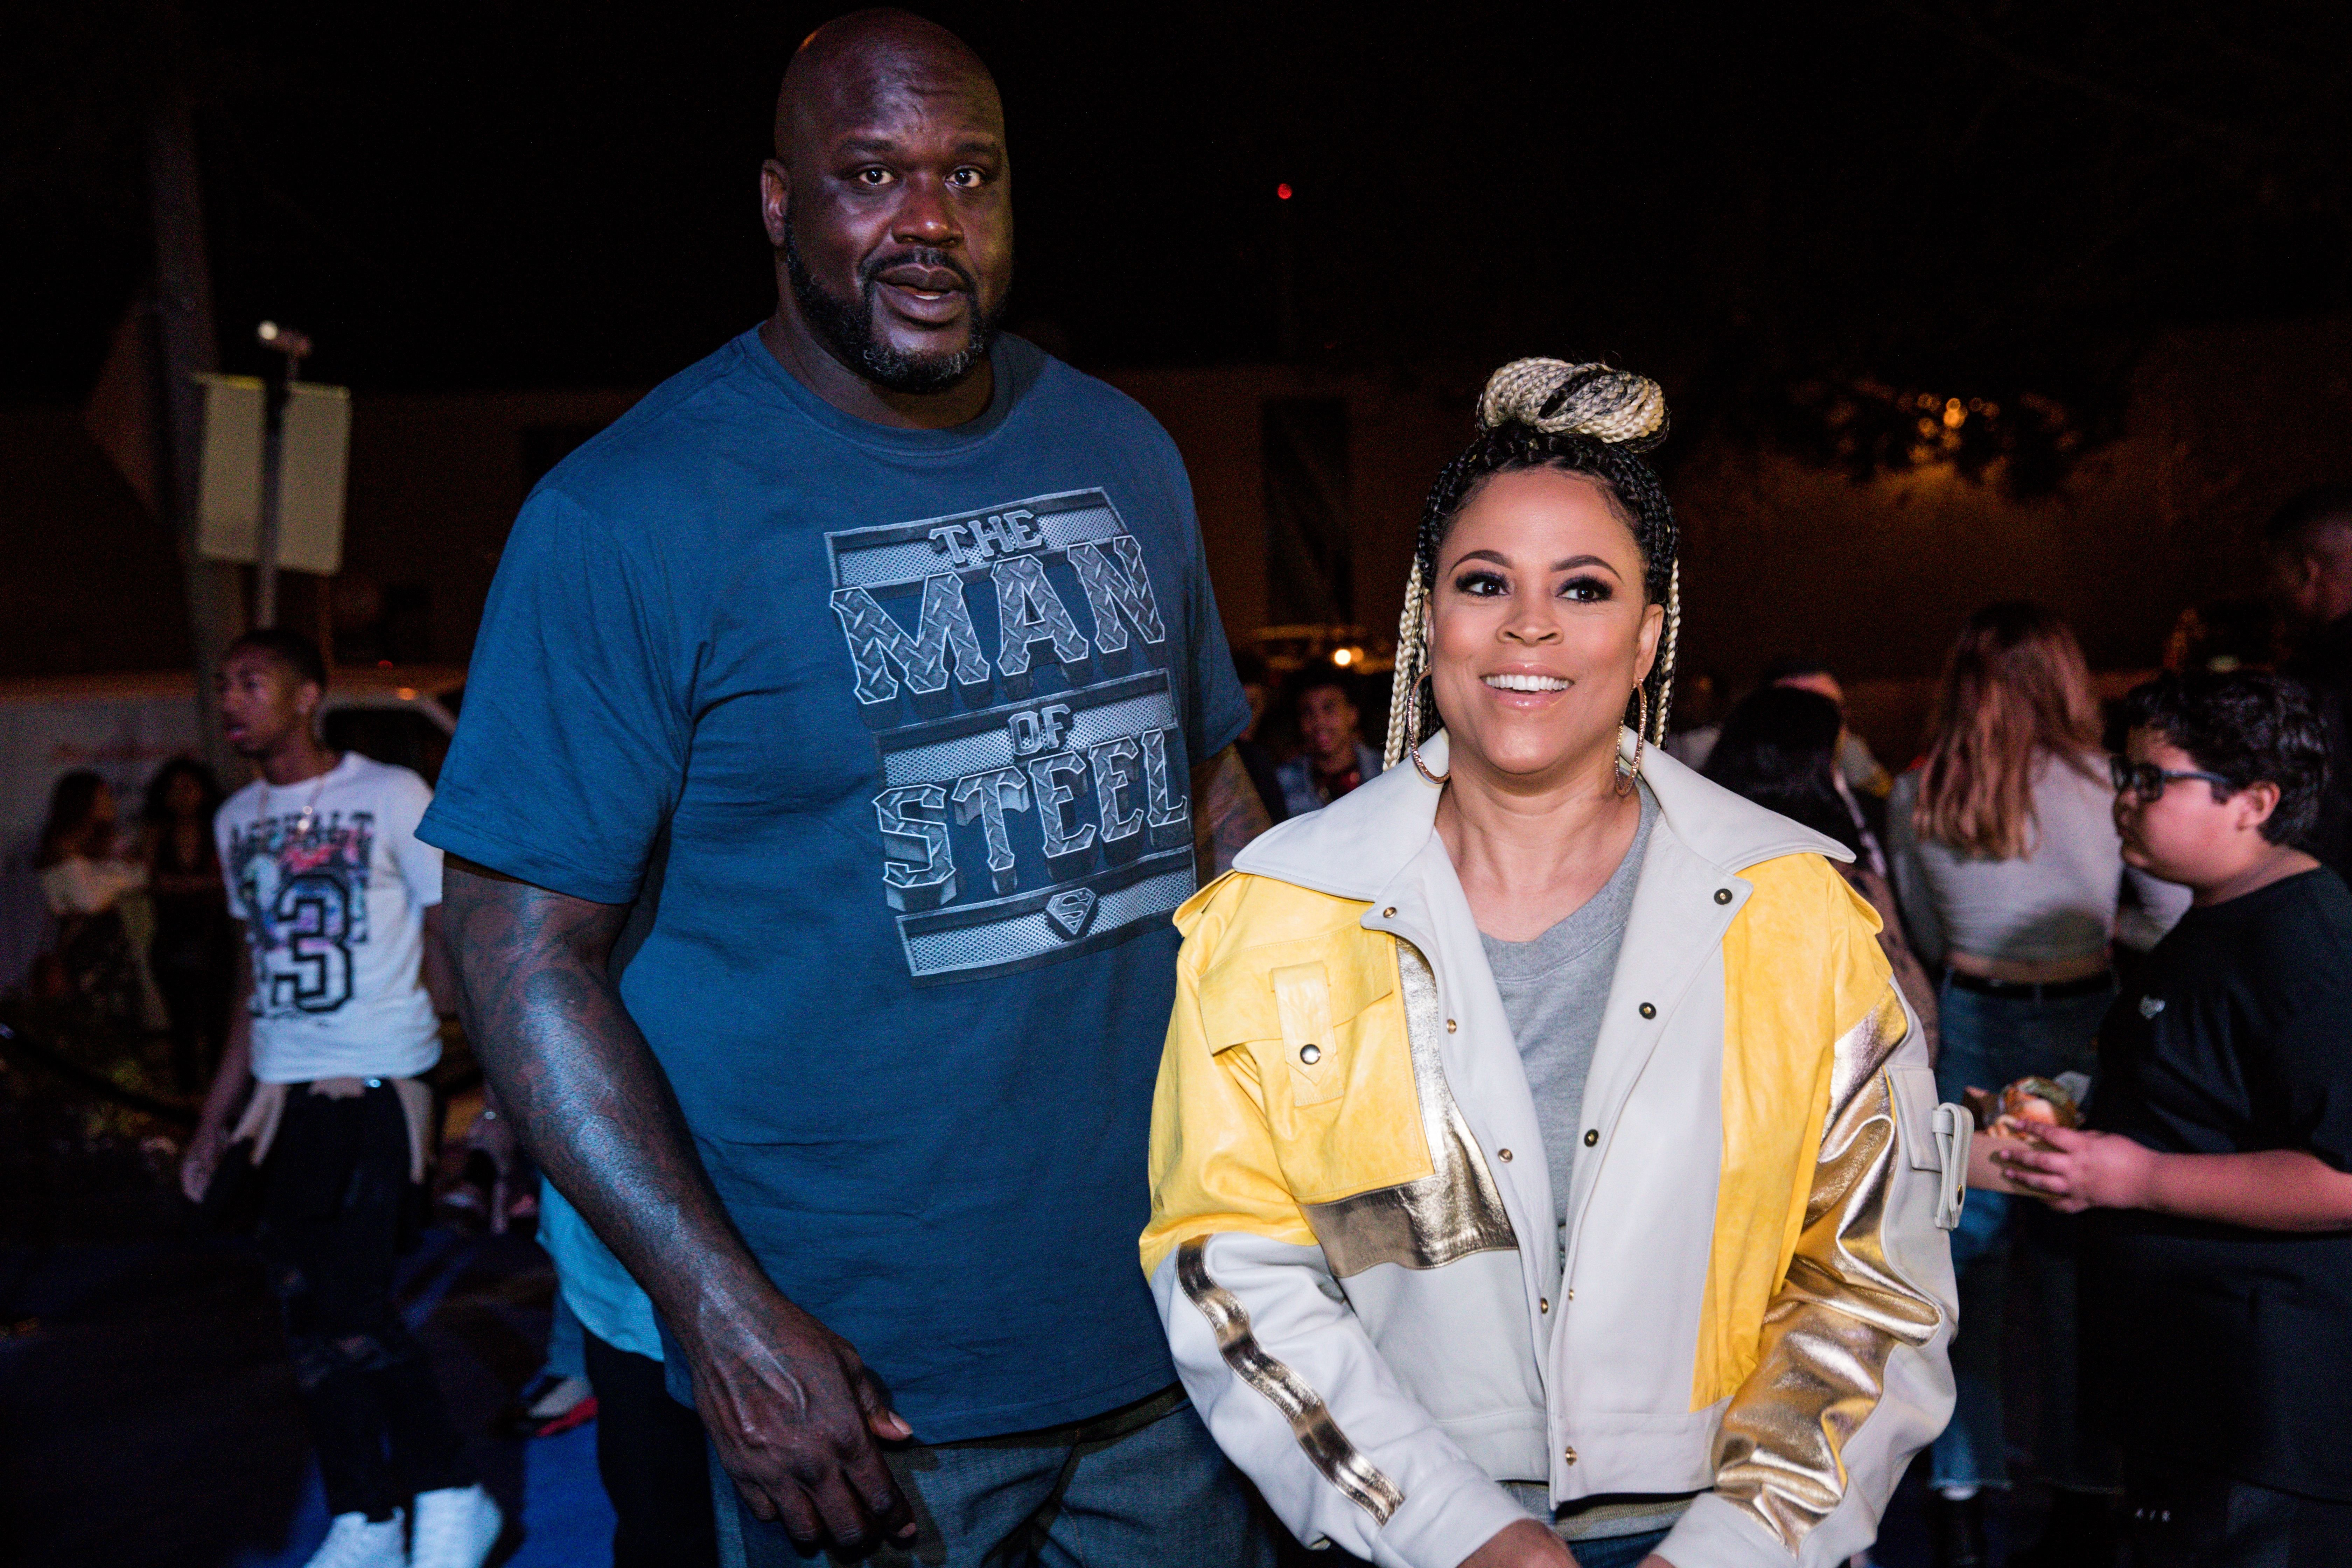 Shaunie O'Neal and Shaquille O'Neal celebrate Shareef O'Neal's 18th birthday at West Coast Customs on January 13, 2018 | Photo: Getty Images